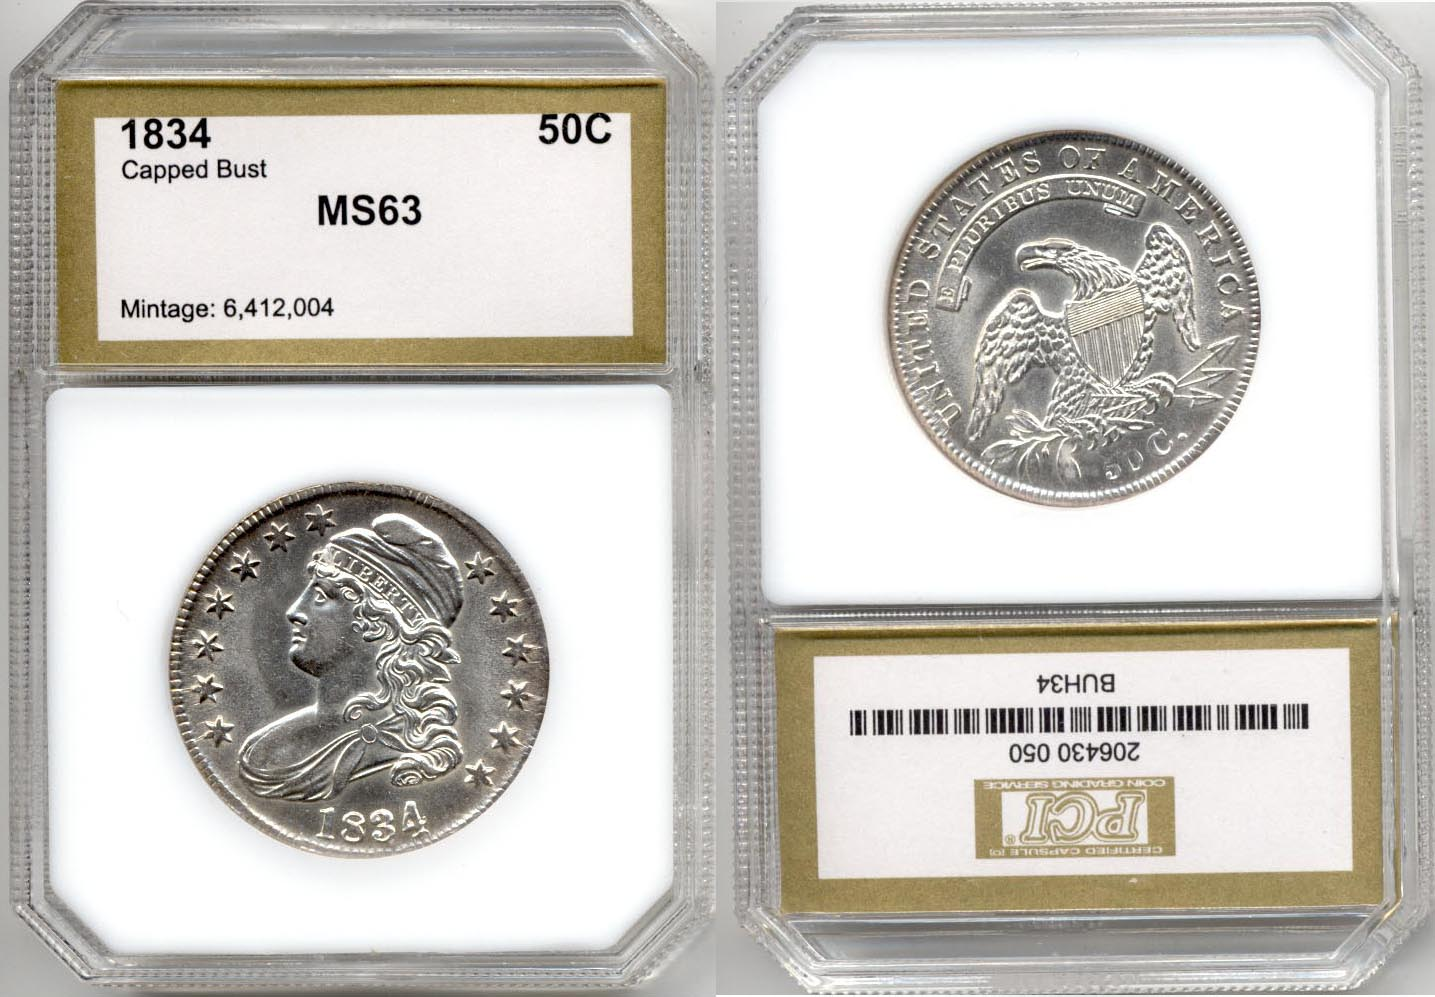 1834 Capped Bust Half Dollar PCI MS-63